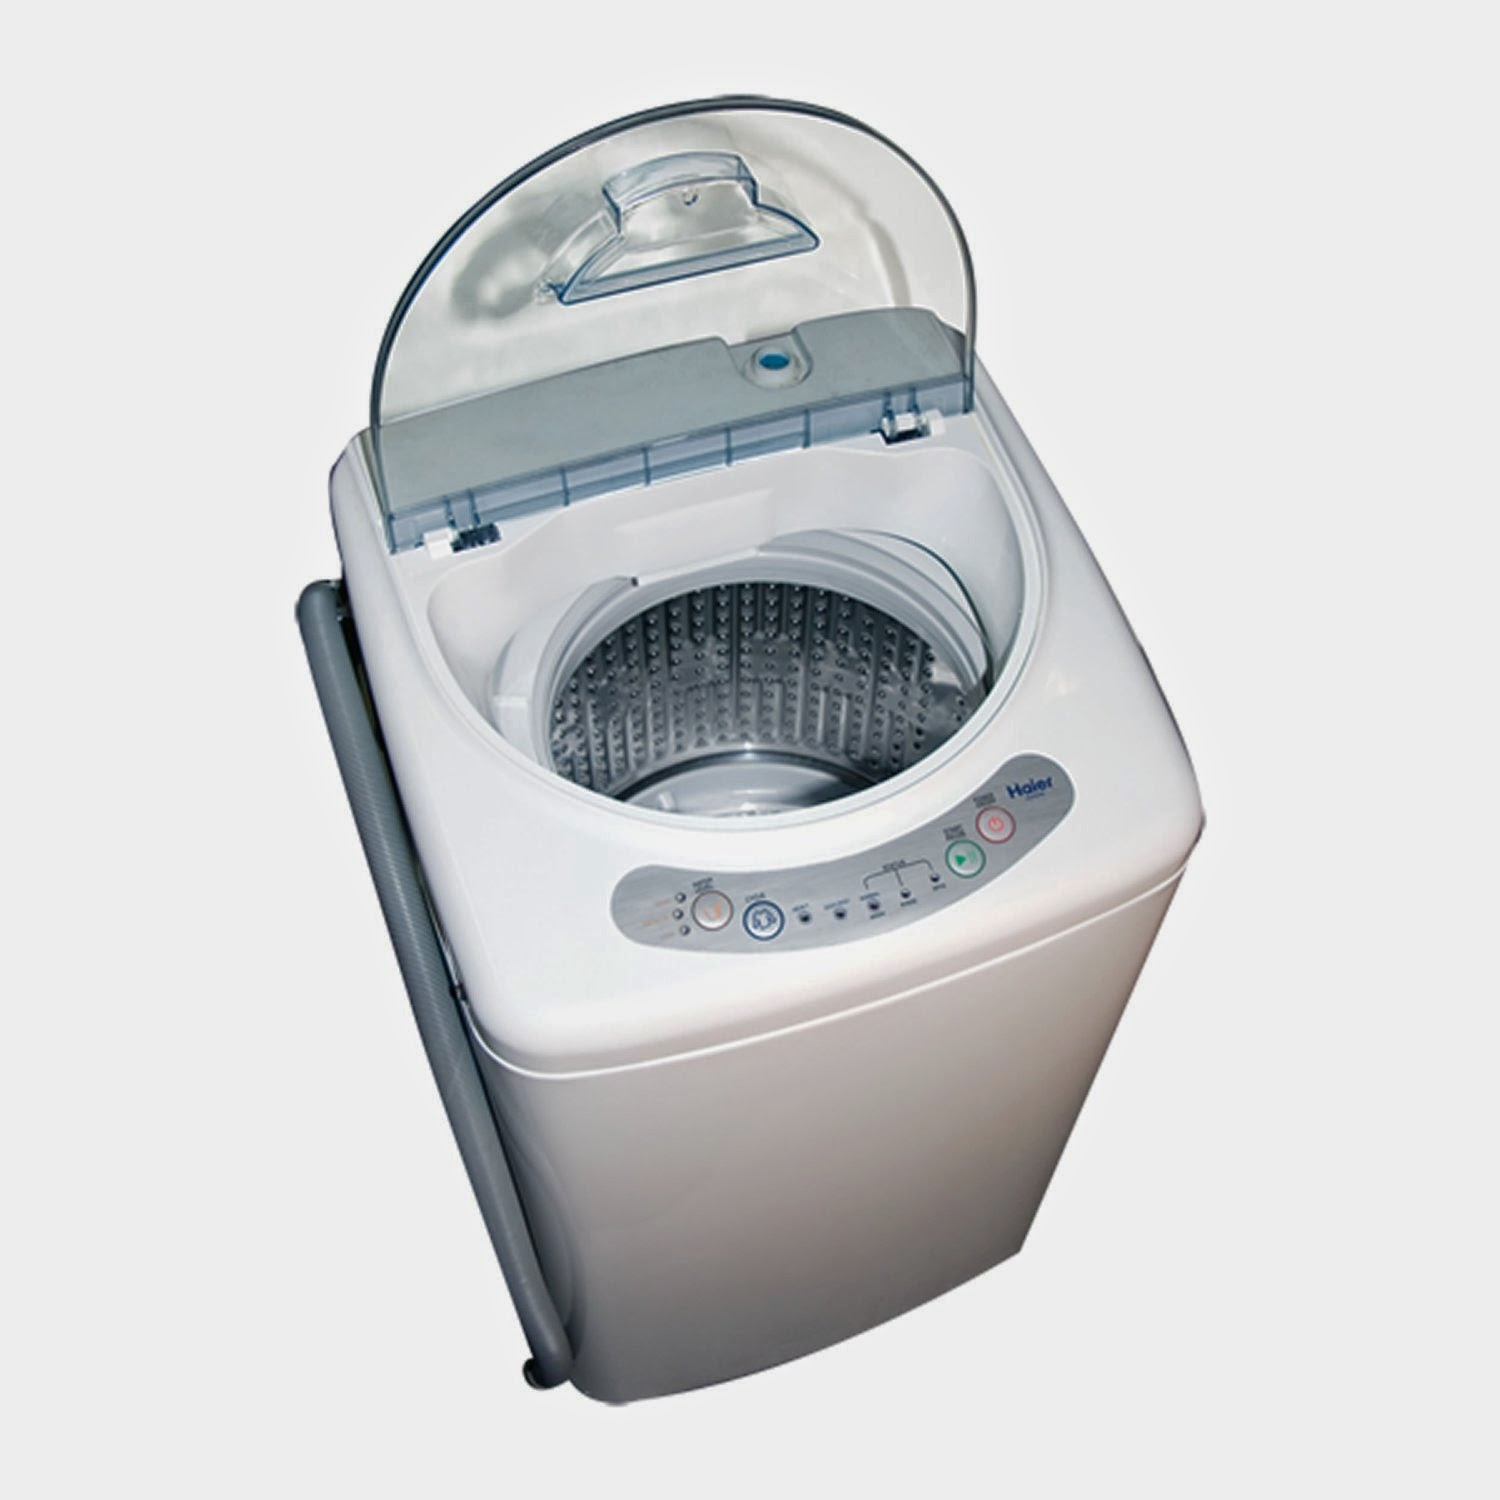 Small Clothes Dryer Portable Washer Dryer Combo Portable Washer And Dryer